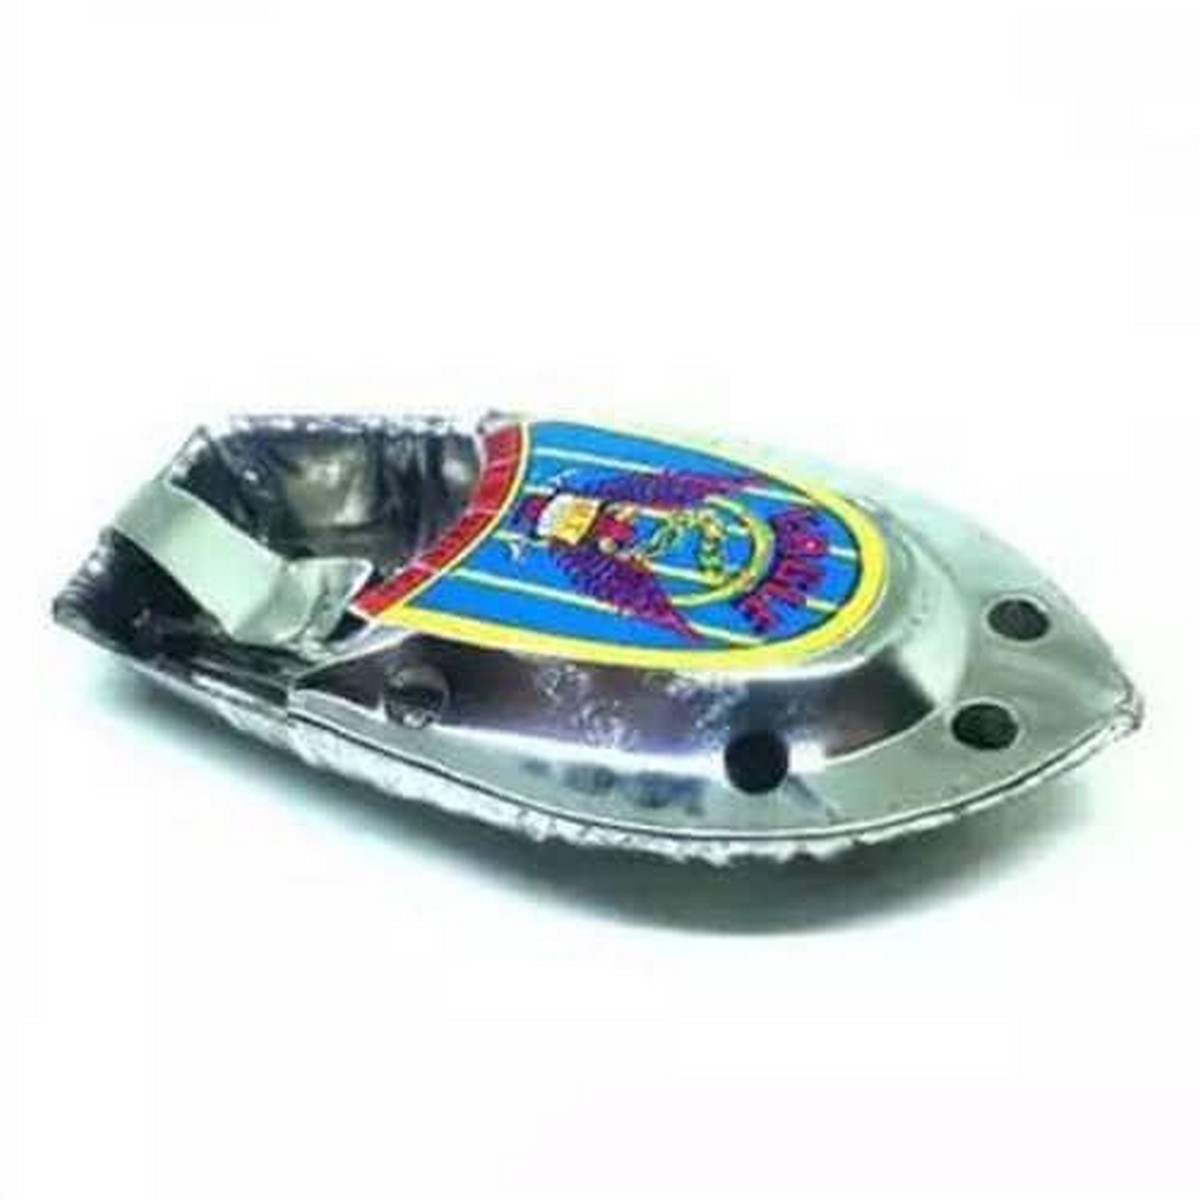 Candle Powered Steam Boat Tin Toy Vintage Style Floating POP-POP Boat Toy Gift